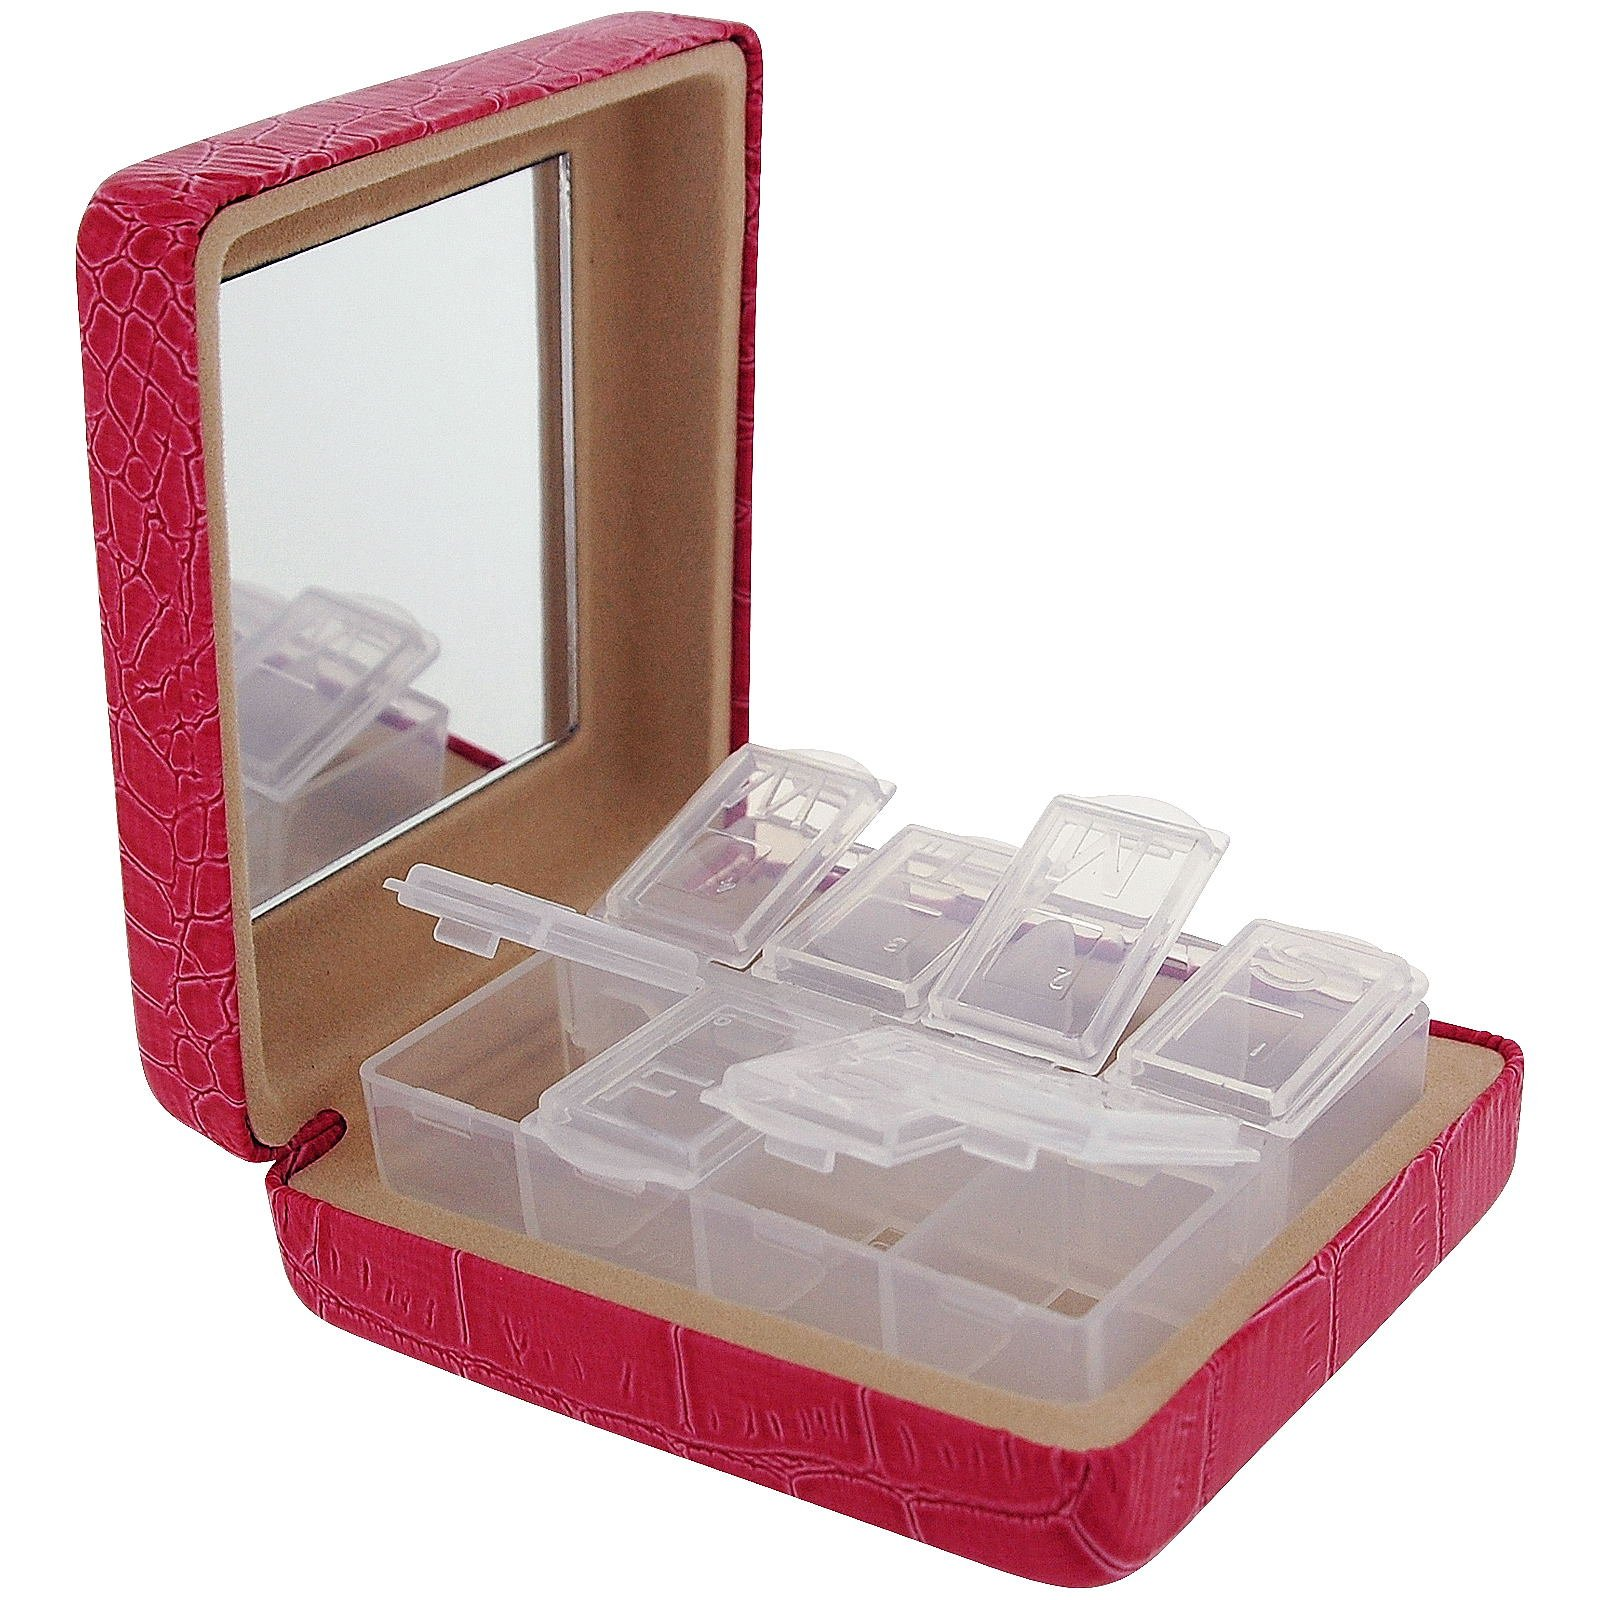 Travel Pill Box Pink Crocodile Effect 8 Compartment Pill Case With Mirror SC1030 by Danielle by Danielle